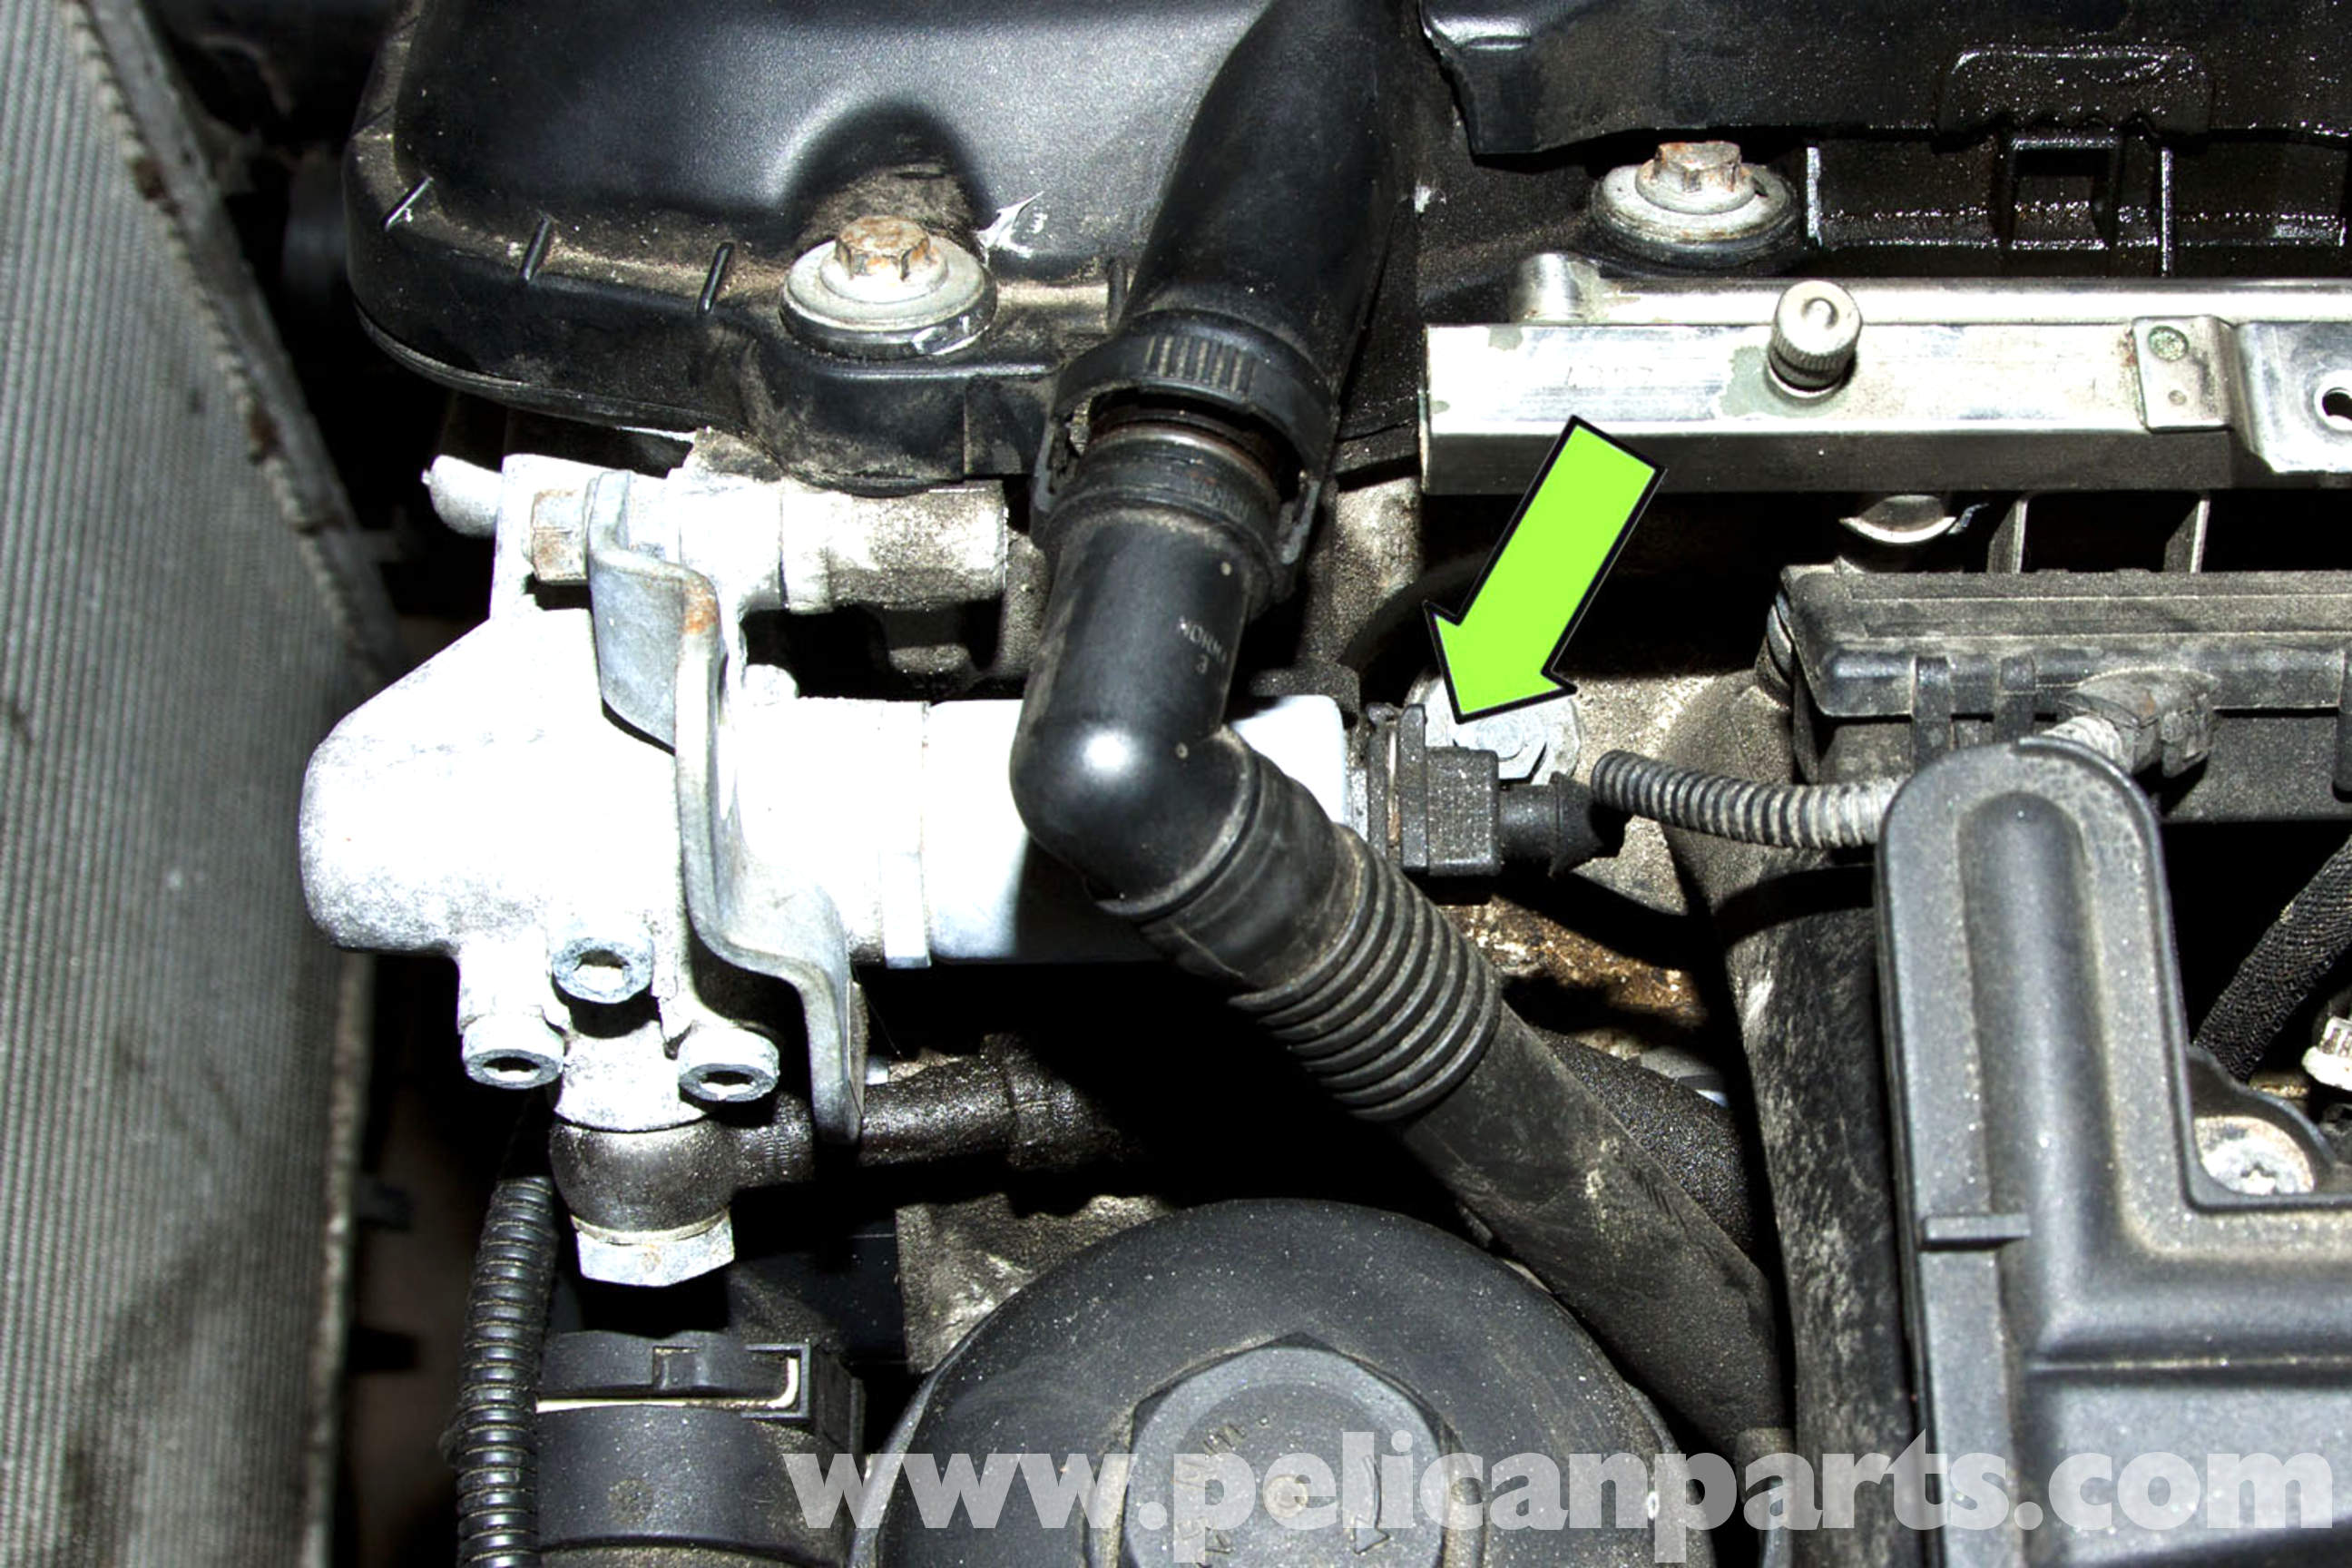 Camshaft Position Sensor Replacement Cost - RepairPal